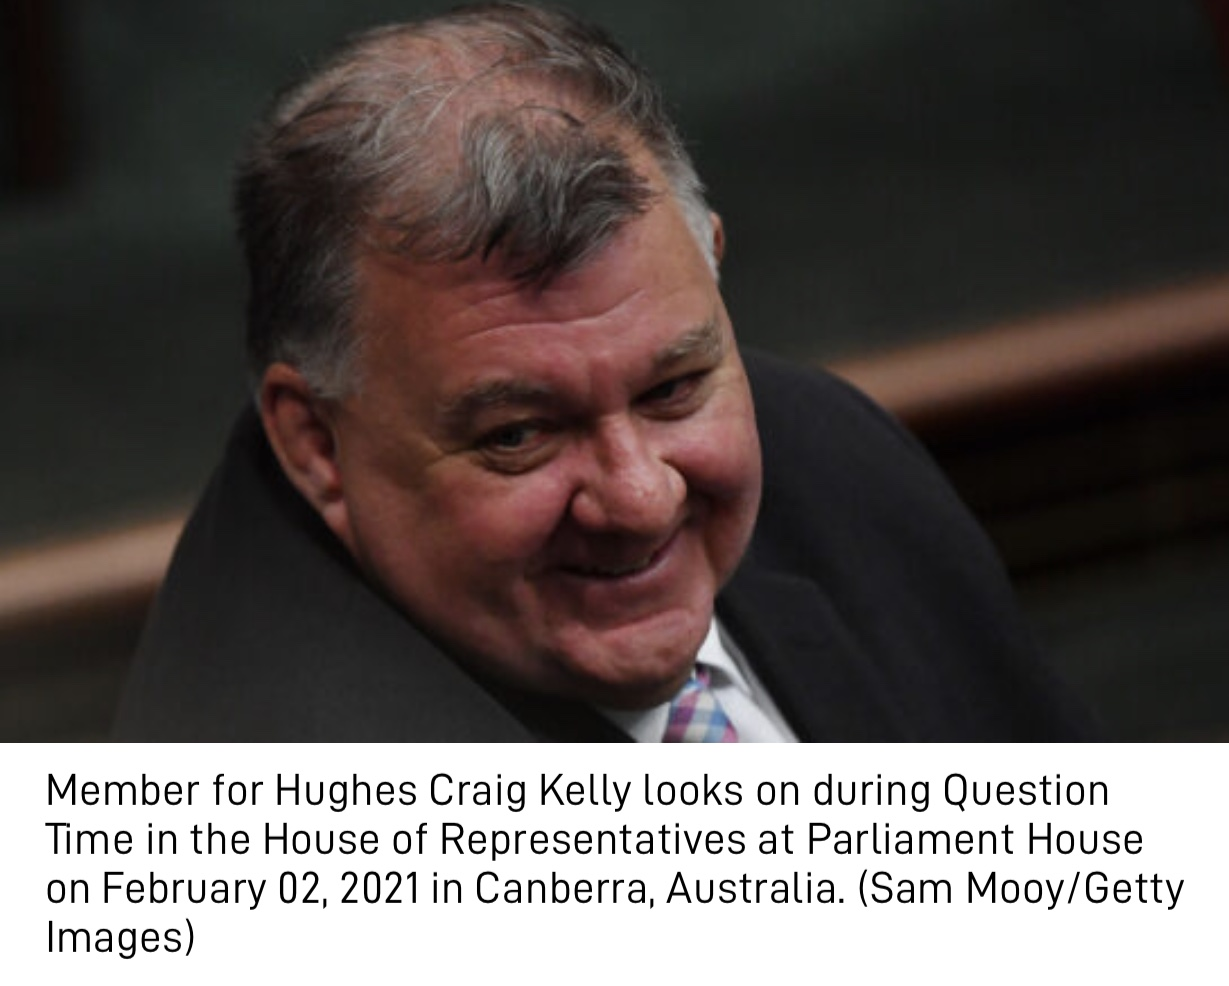 Craig Kelly Must Be 'Cancelled' for Revealing Facts About Alternative COVID-19 Treatment